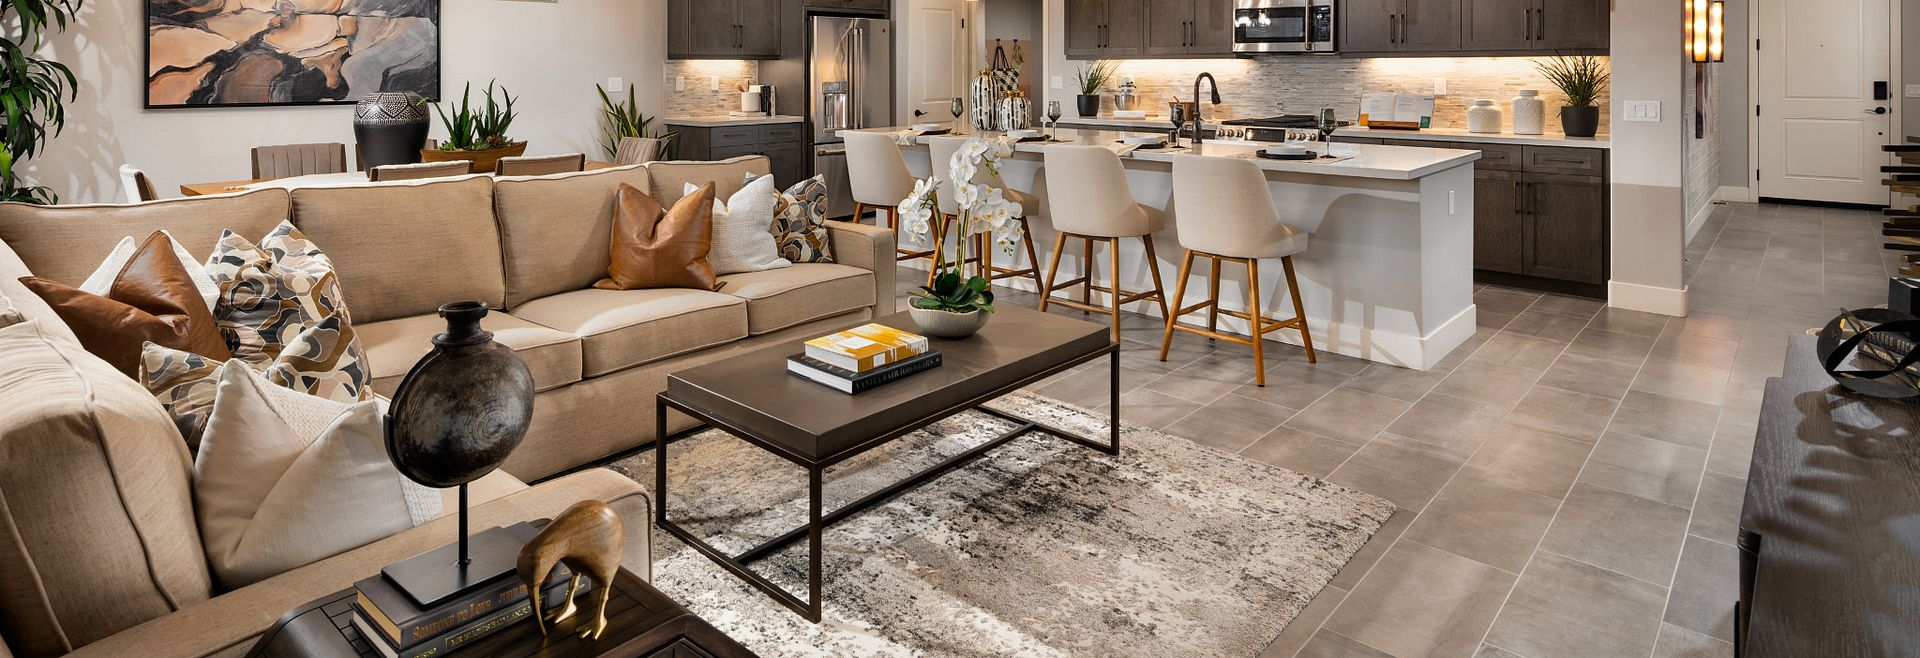 Trilogy at the Polo Club Connect Model Home